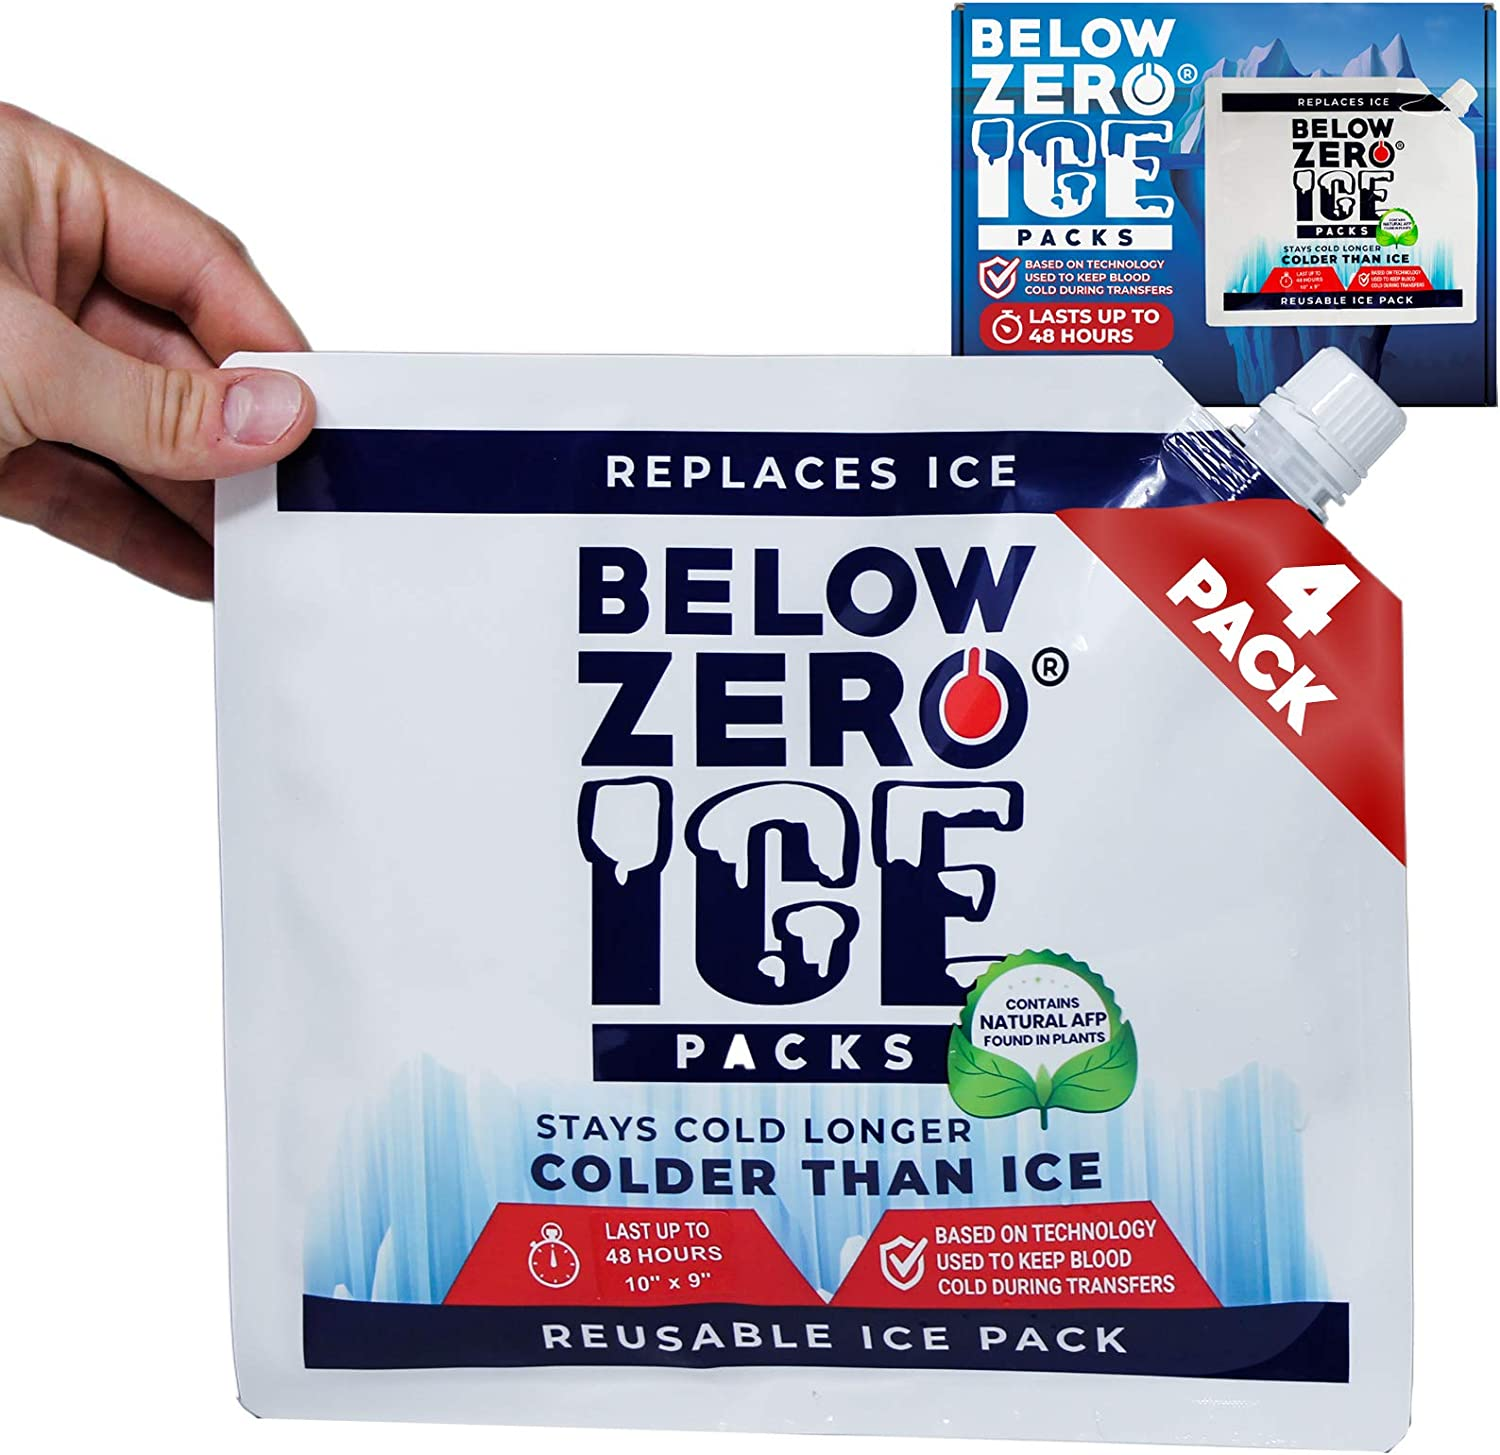 Below Zero Colder Than Ice Freeze Packs - 10x9in Absorbent Polymer Ice Pack for Lunch Box, Coolers, Fits Large and Small Insulated Coolers - No Ice Needed - Lasts Upto 48 Hrs